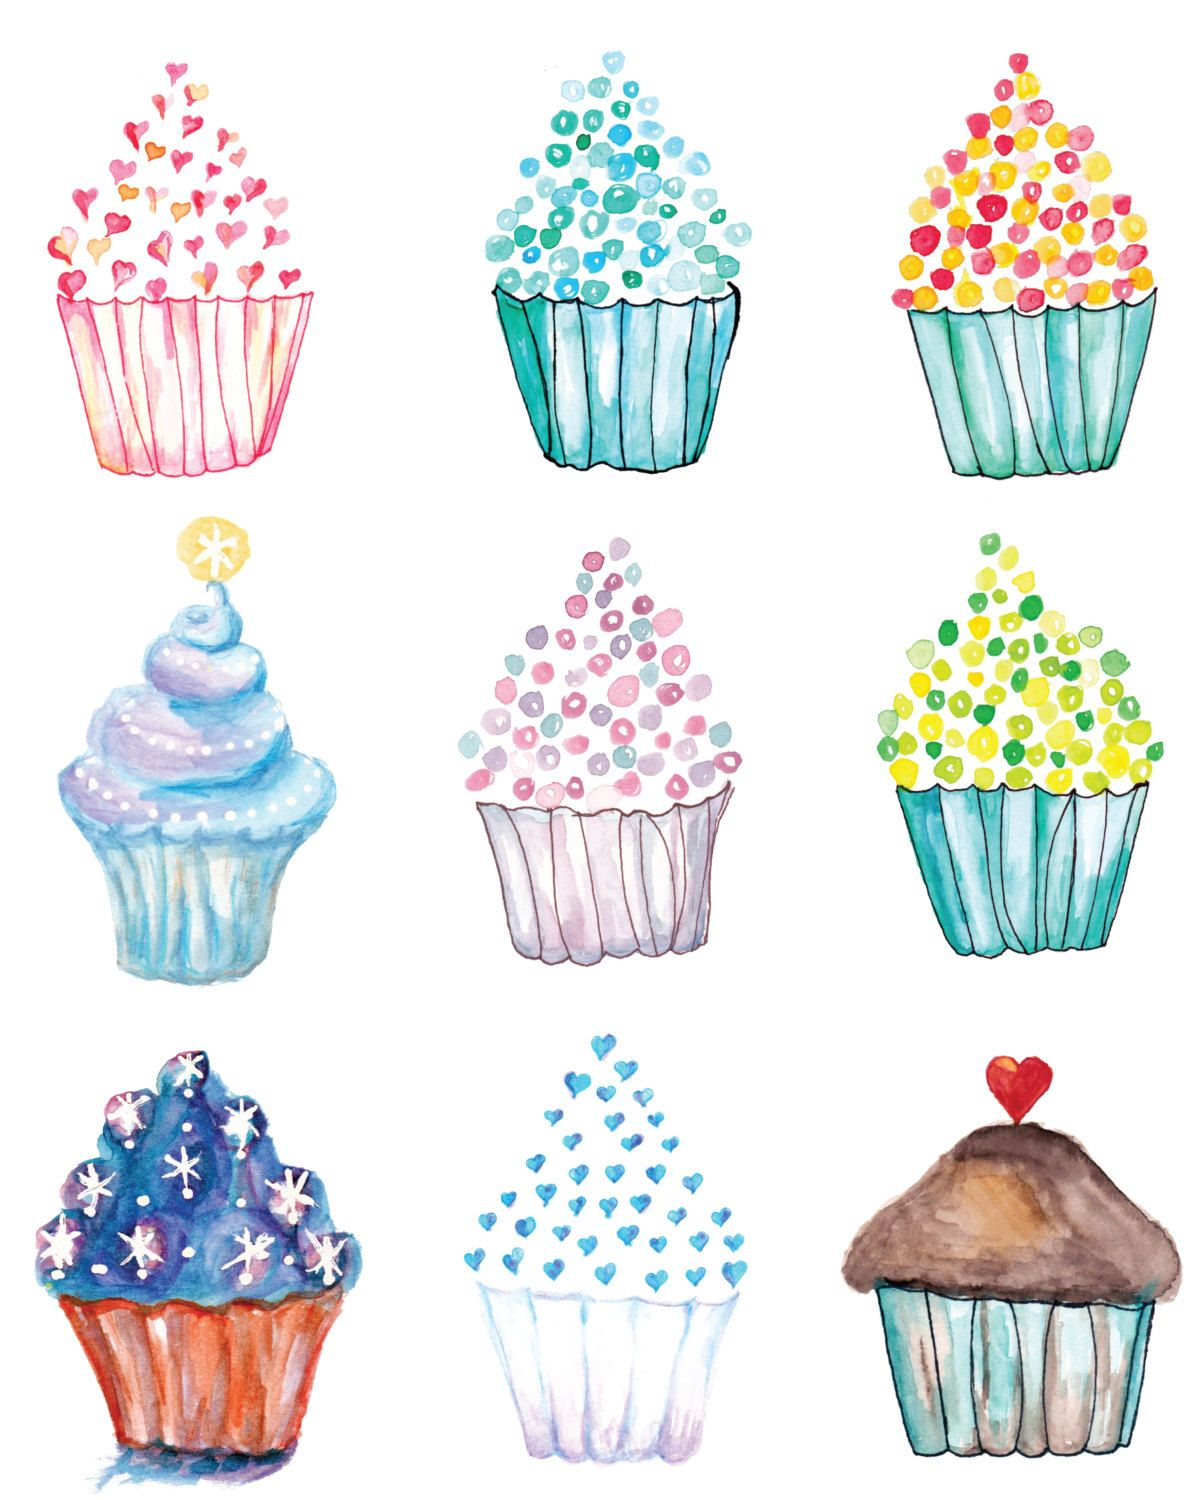 Cupcake Poster Watercolor Cupcakes Cupcake Art Birthday